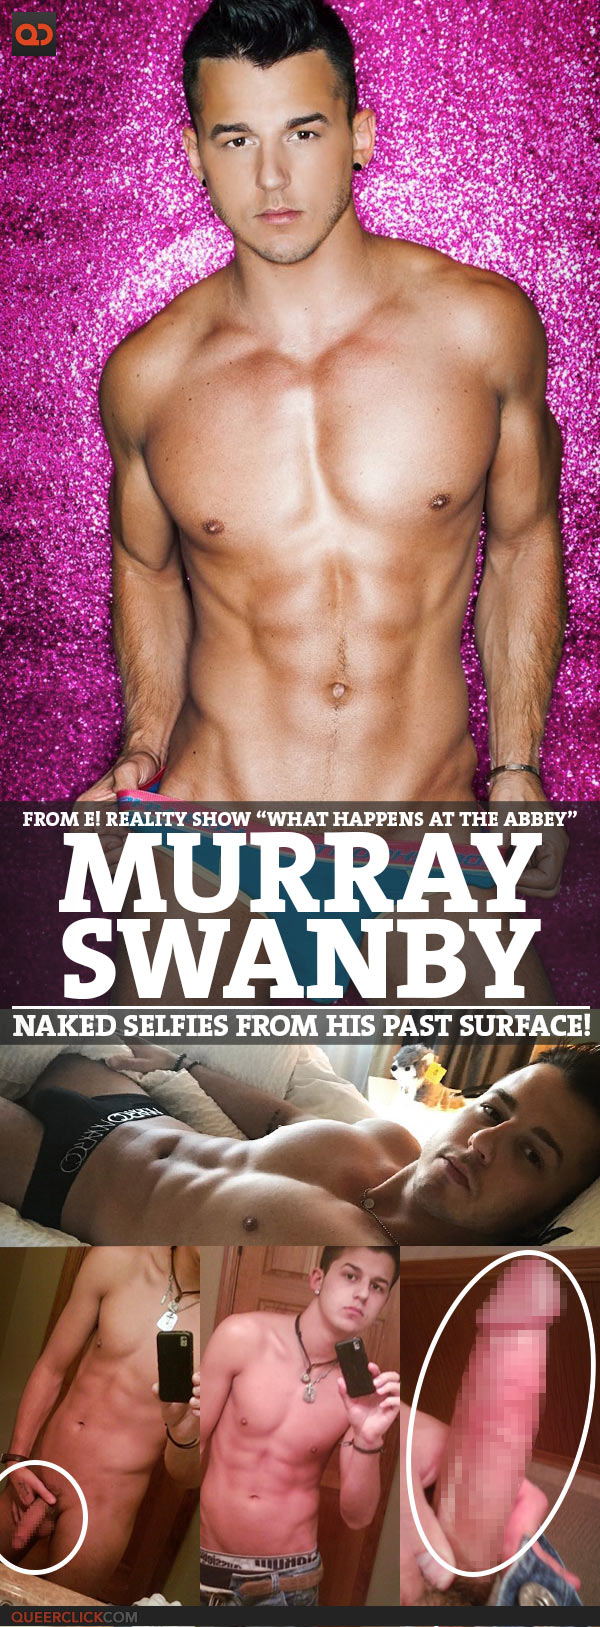 "Murray Swanby, From E! Reality Show ""What Happens At The Abbey"", Naked Selfies From His Past Surface!"